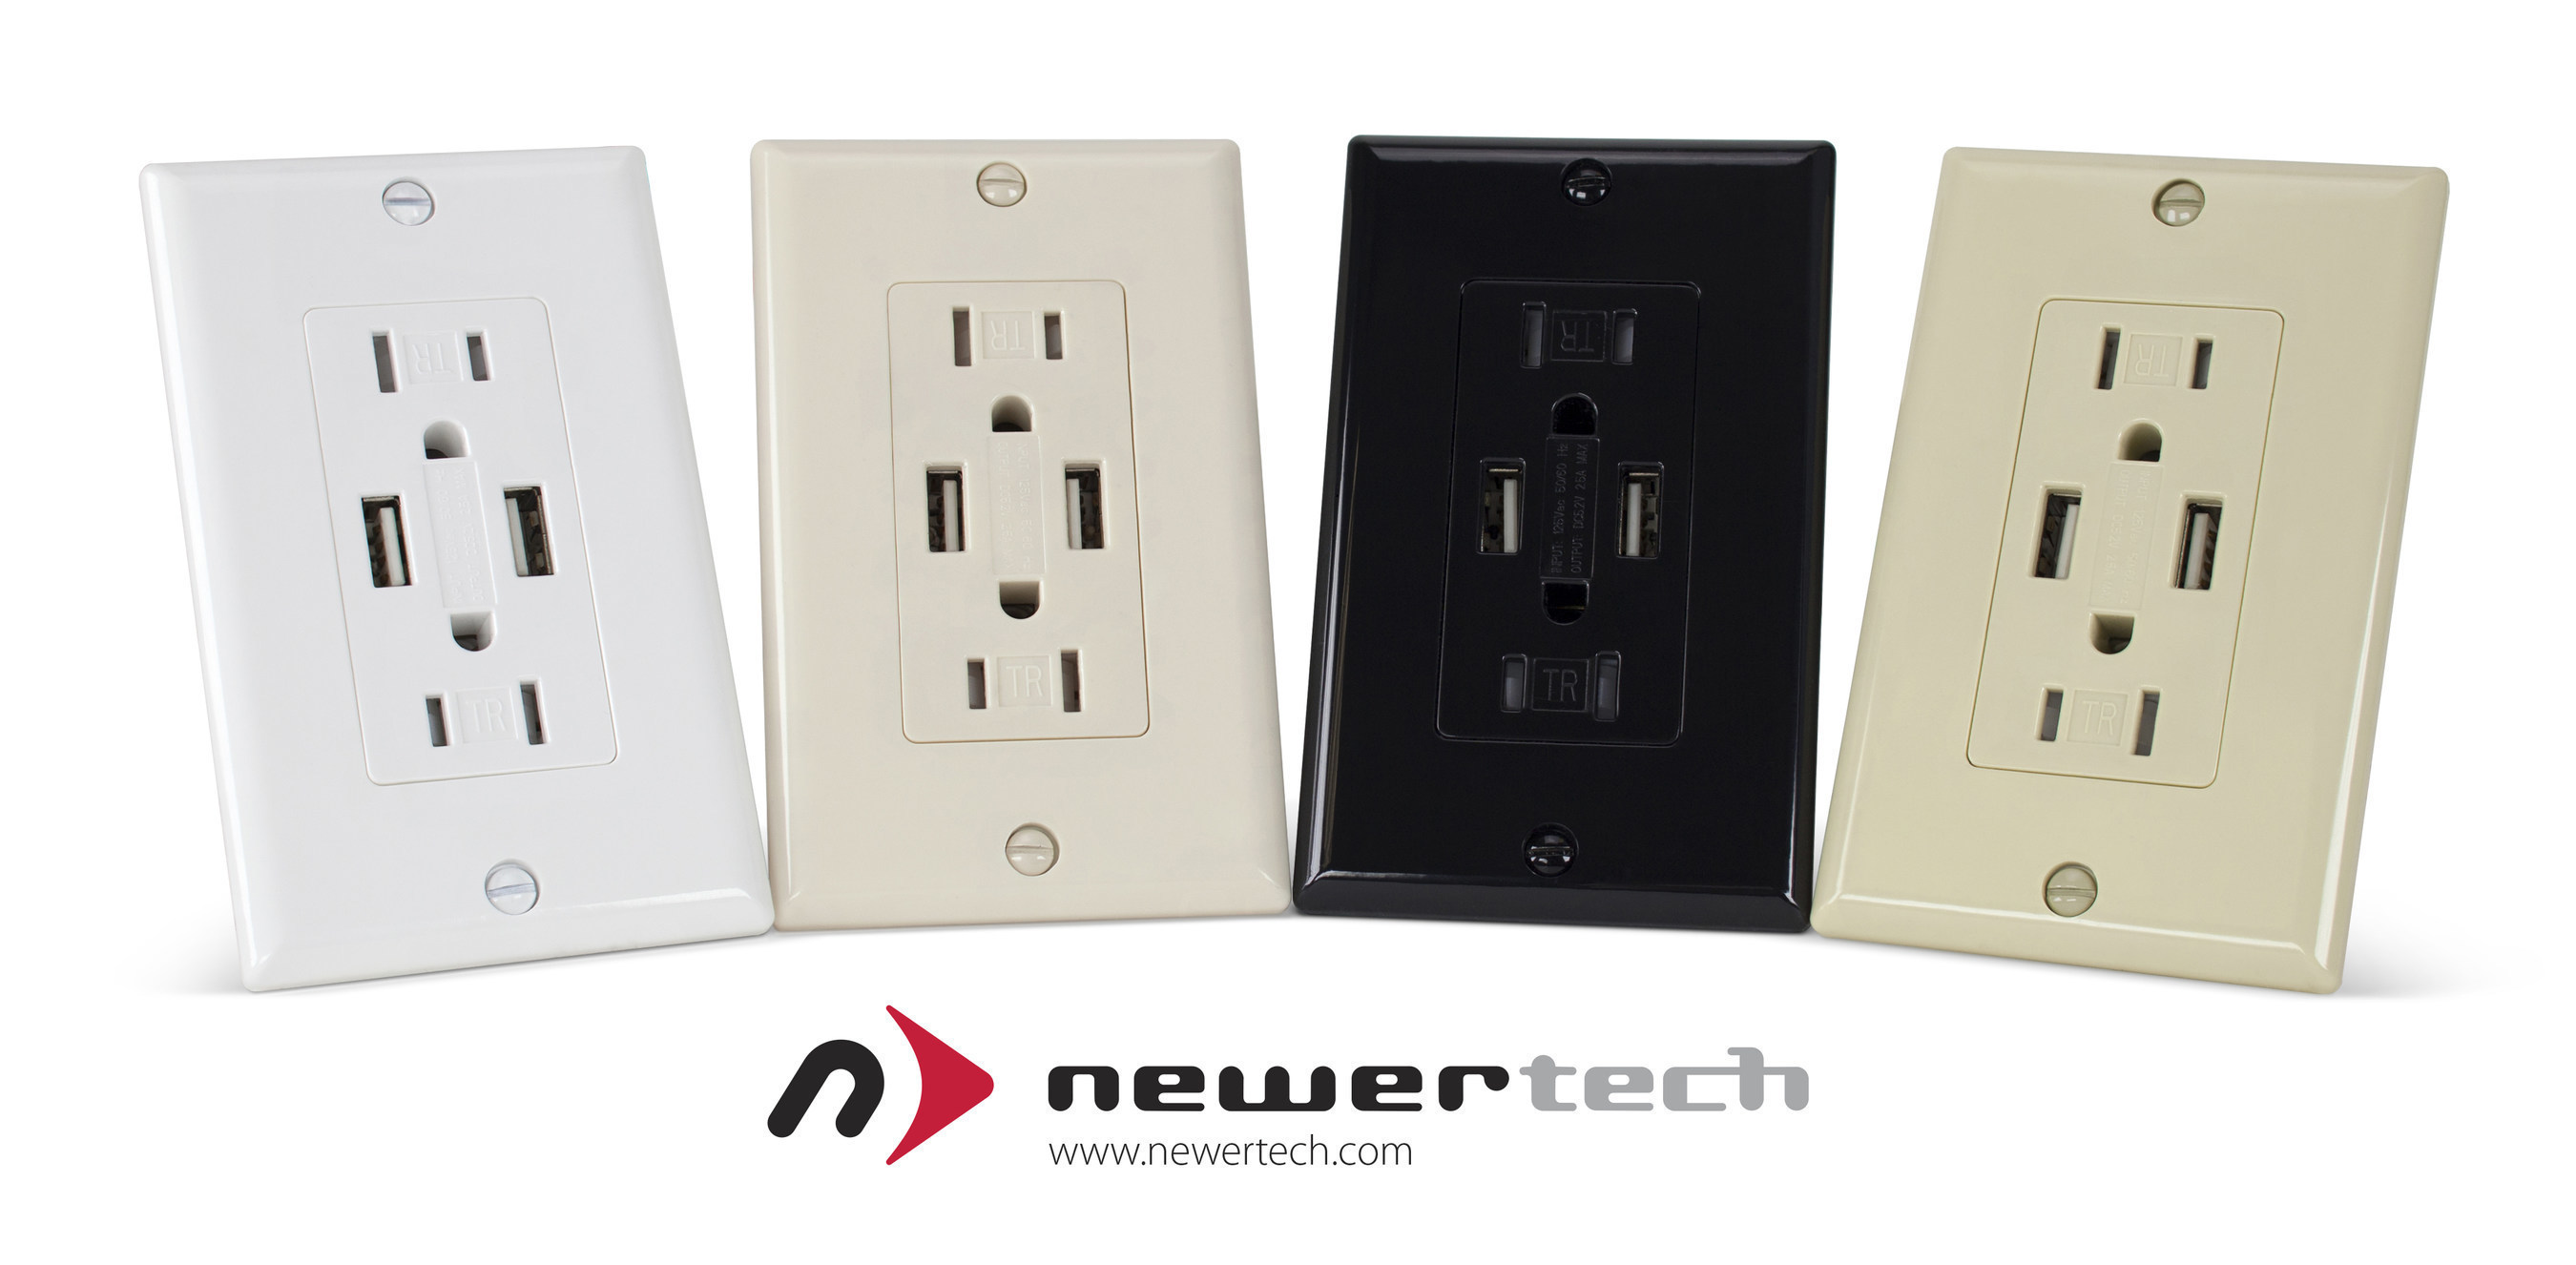 NewerTech Power2U electrical outlet with two USB ports for easy charging of multiple mobile devices. Available from Other World Computing at http://eshop.macsales.com/shop/accessories/power_adapters/USB/in_wall_outlets.